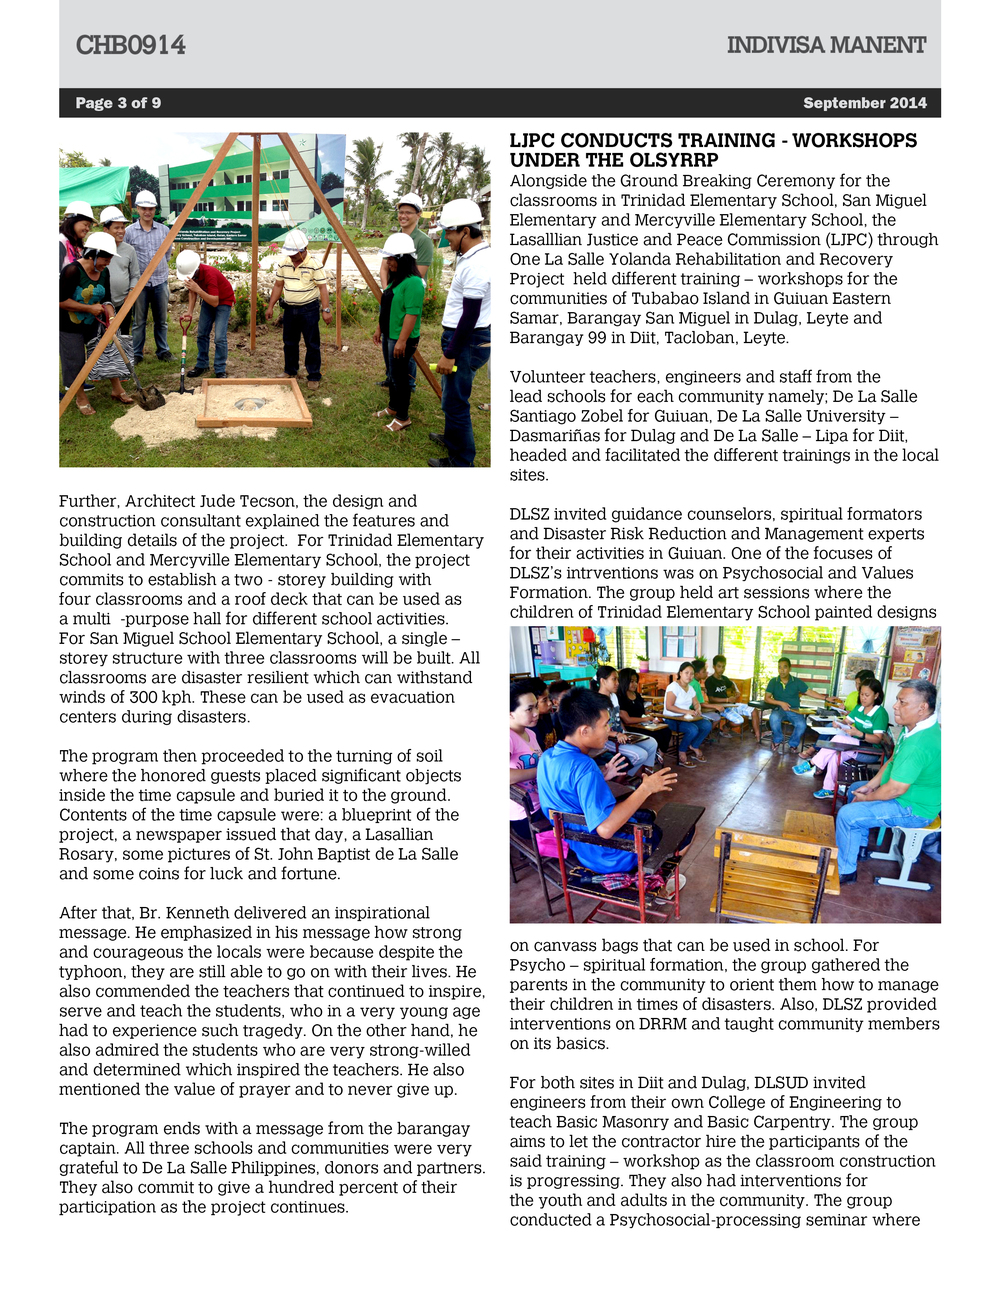 Central house bulletin september 2014 de la salle philippines chb09143g malvernweather Choice Image